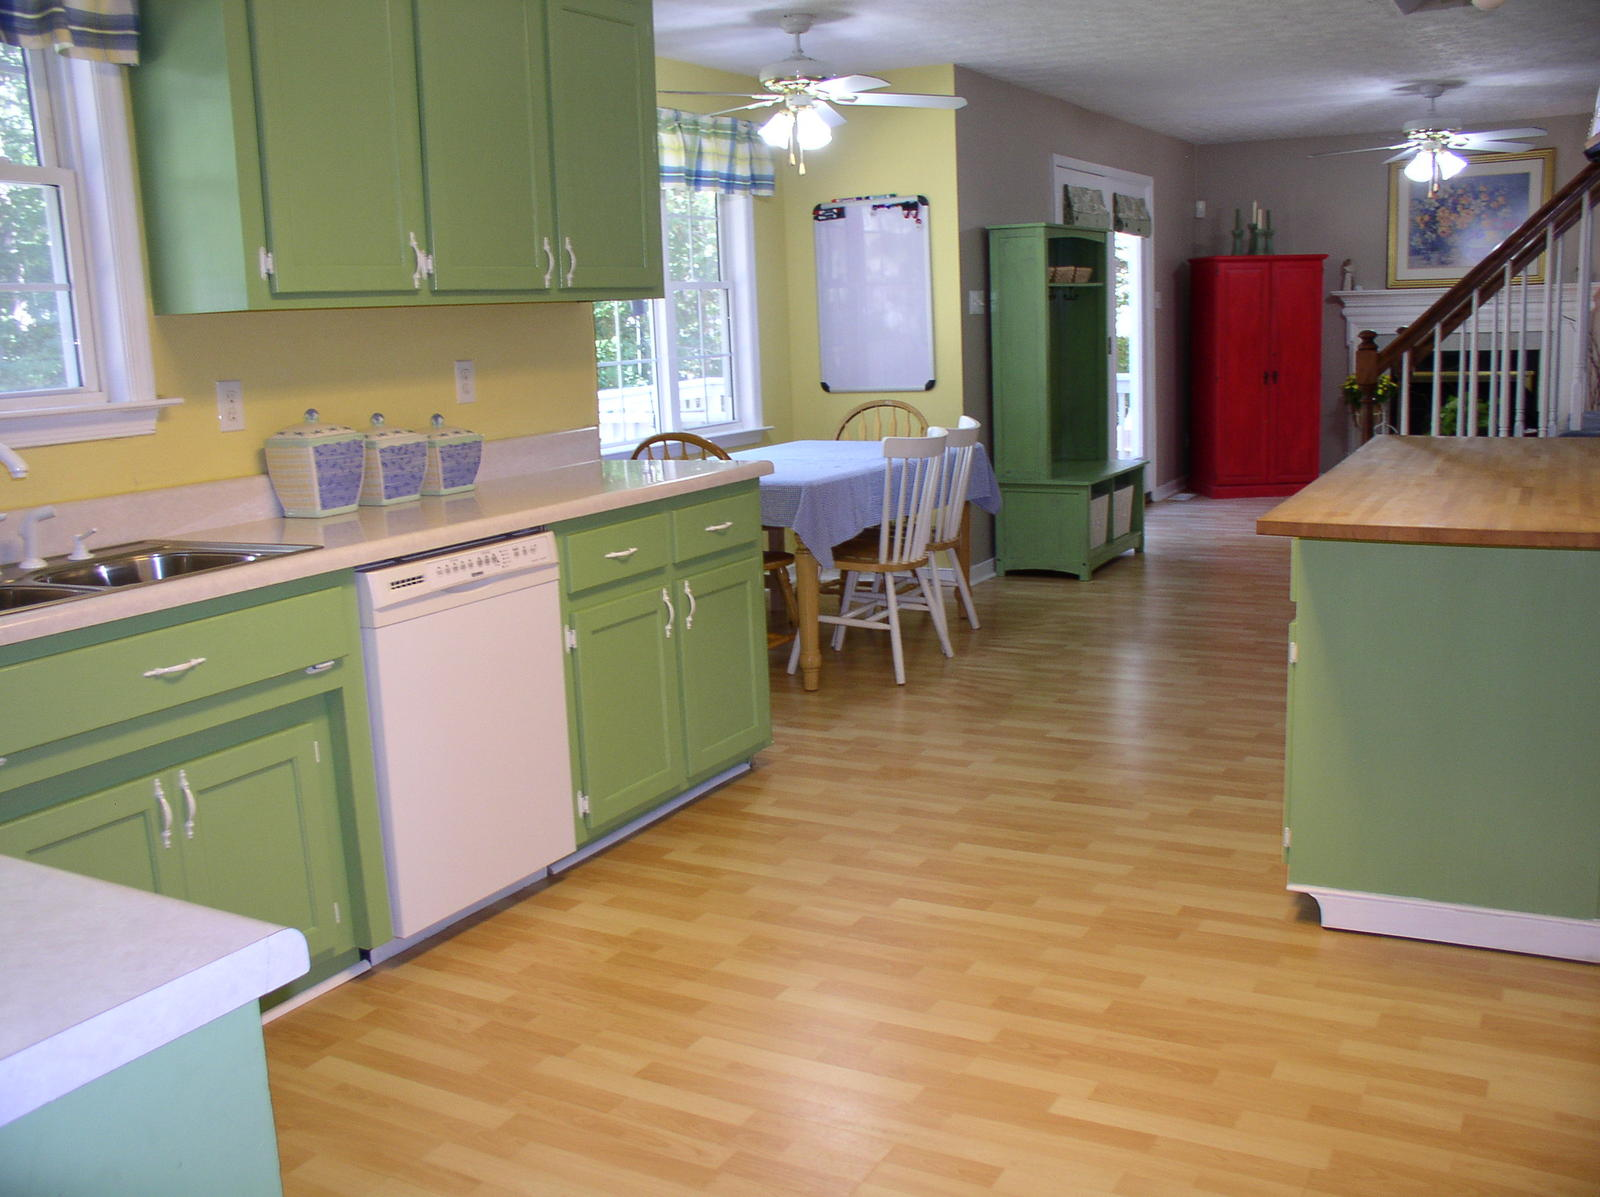 Marvelous photograph of Are Oak Cabinets Outdated 2014 2015 Home Design Ideas with #906A3B color and 1600x1197 pixels